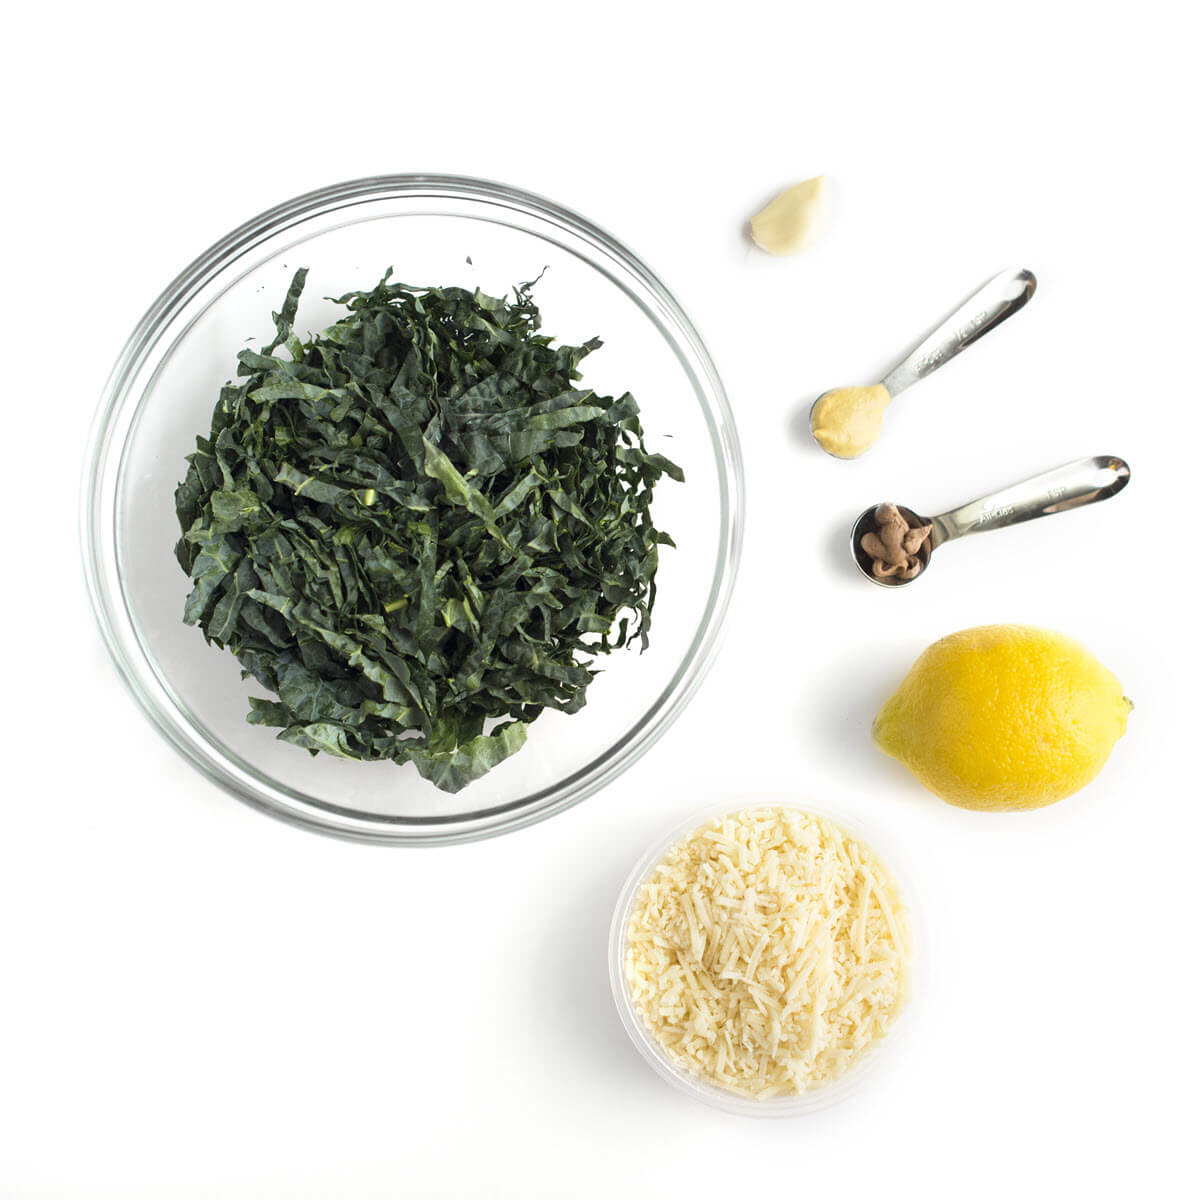 Kale Caesar Salad Ingredients